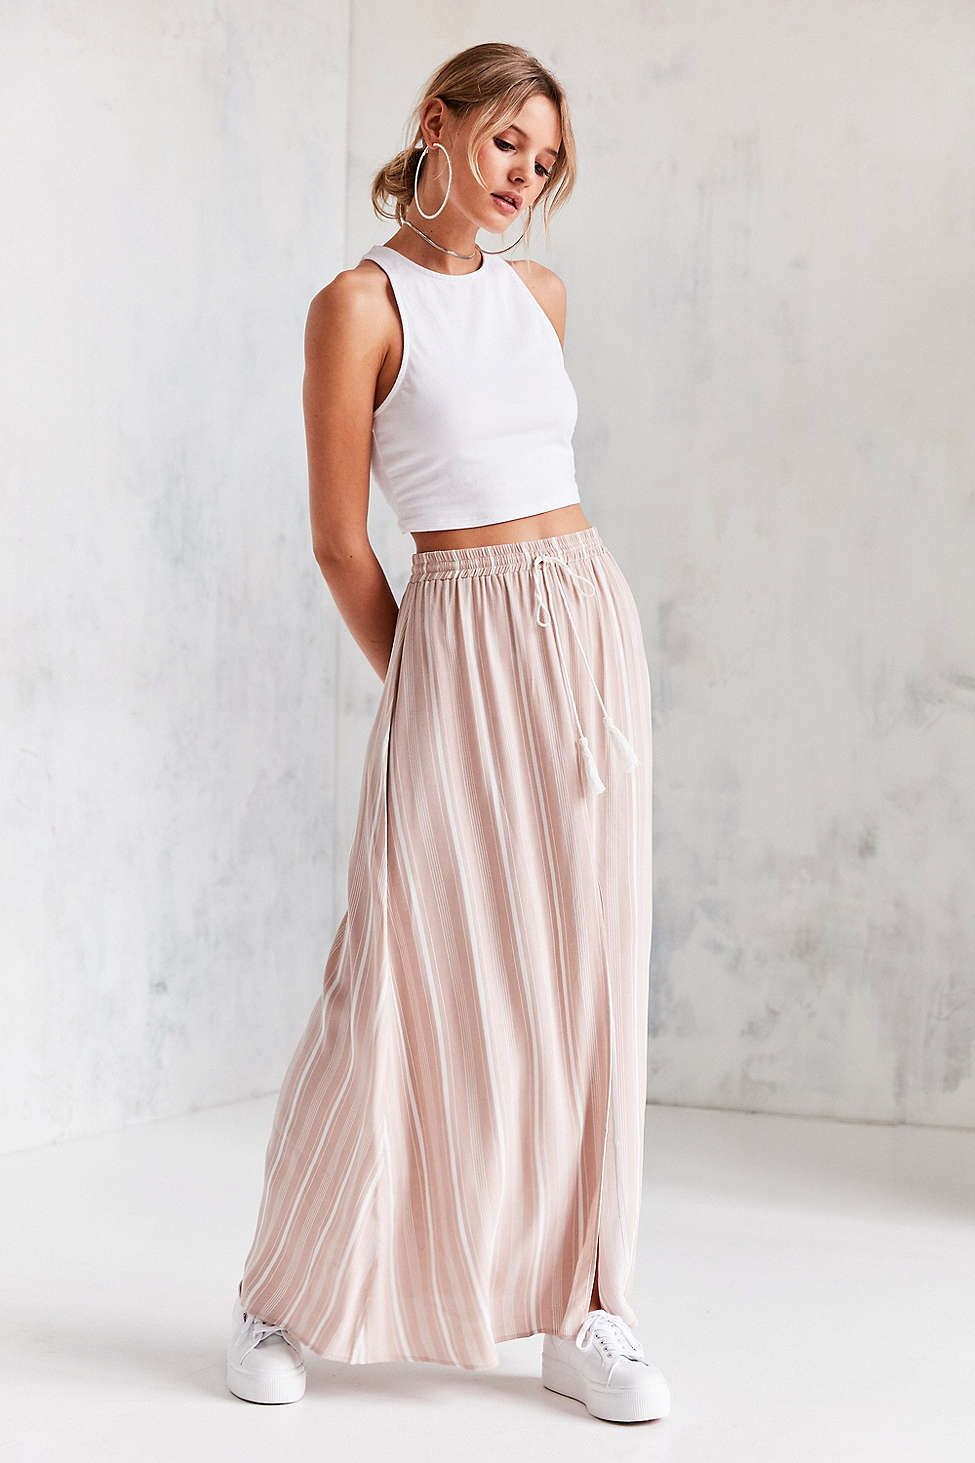 Ecote tassel tie maxi skirt clothing wish list pinterest